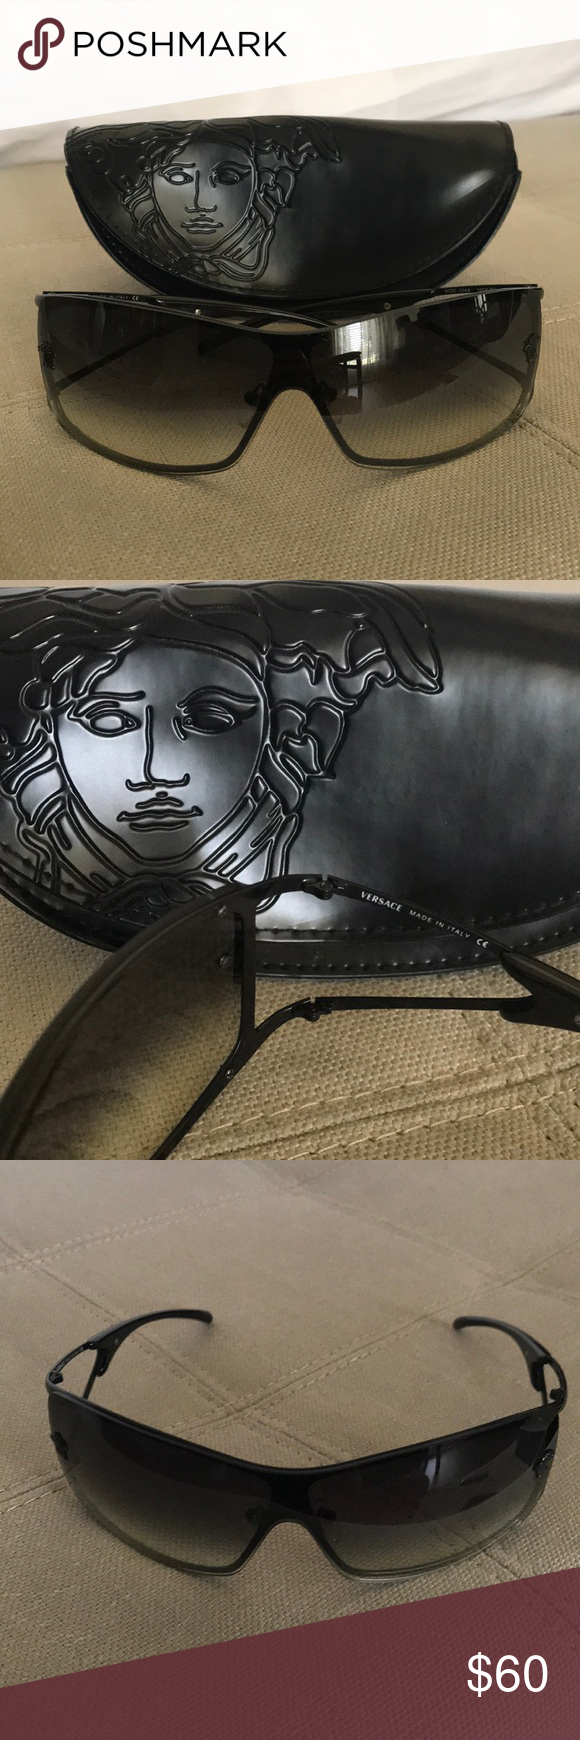 211424b601f3b Versace sunglasses mod. 2048 1009 8G Versace sunglasses in black are new! I  think I used them twice because they were a gift. No scratches or damage l  still ...